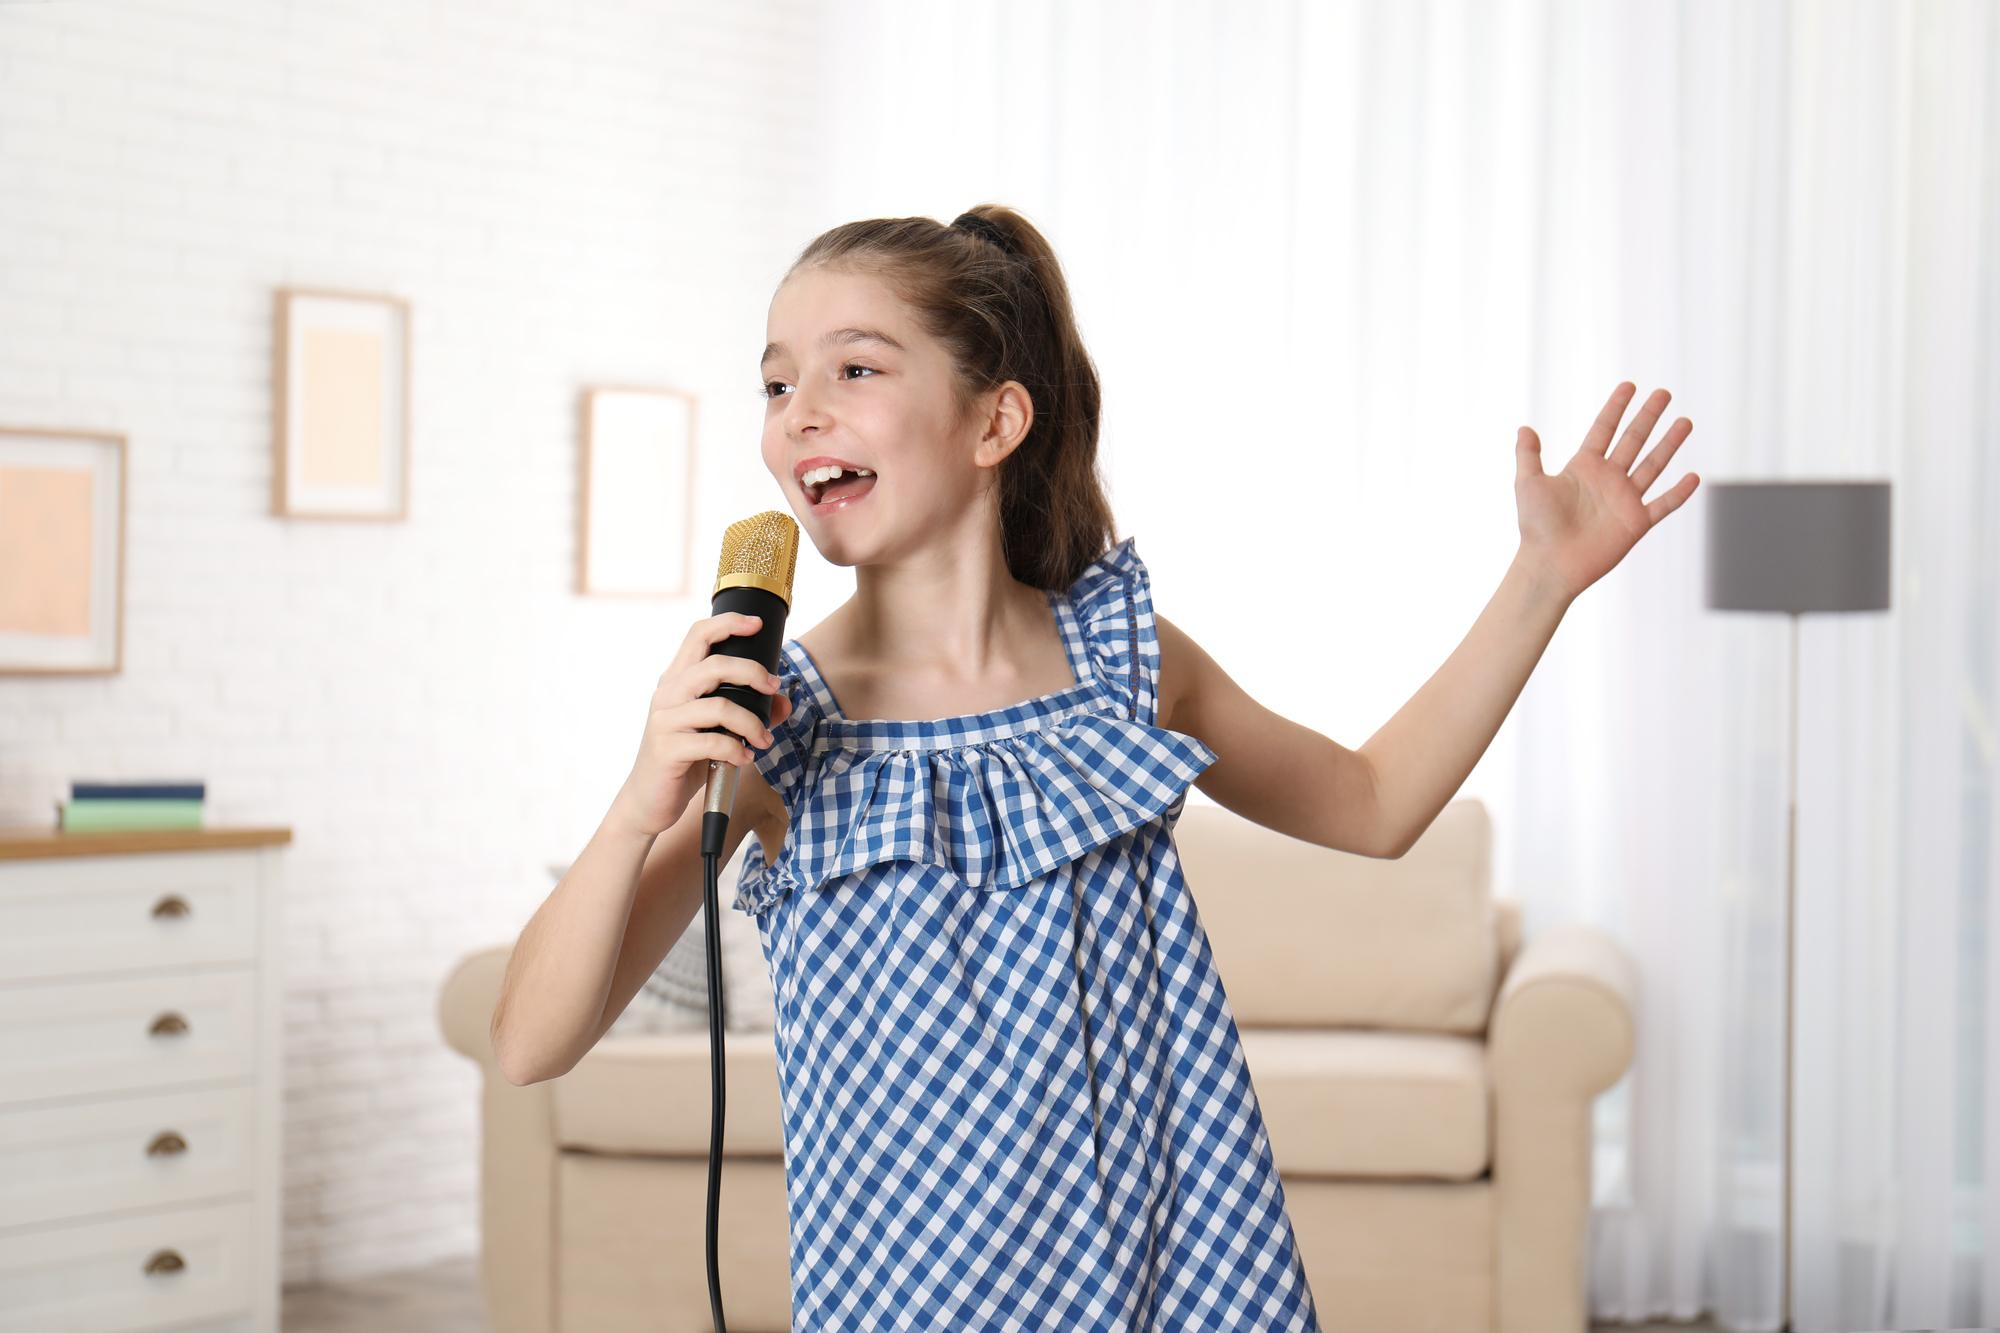 Encourage your child to follow her passions, even if they differ from yours